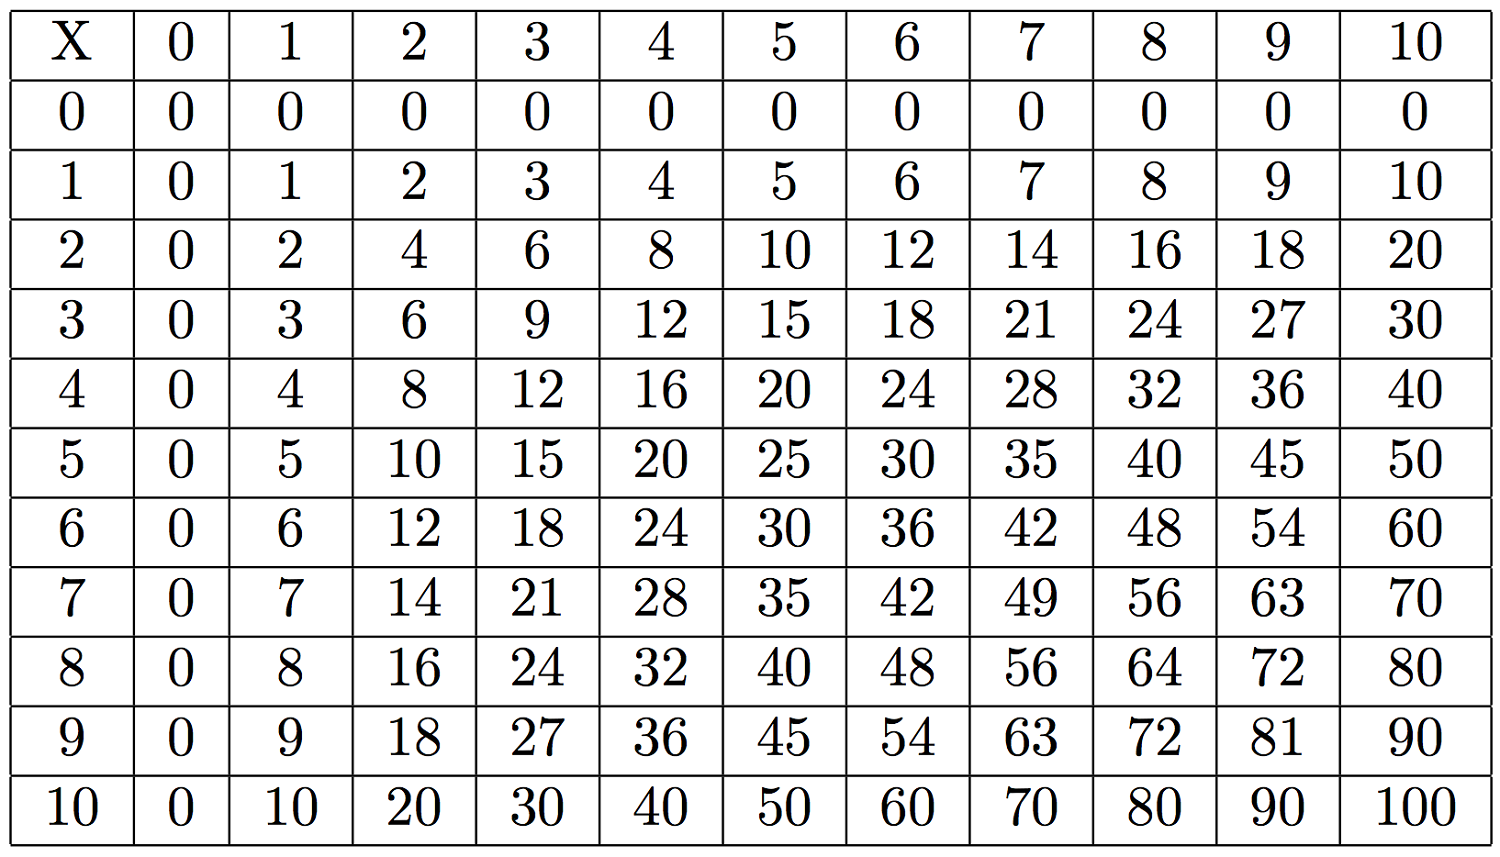 Large Multiplication Table To Train Memory